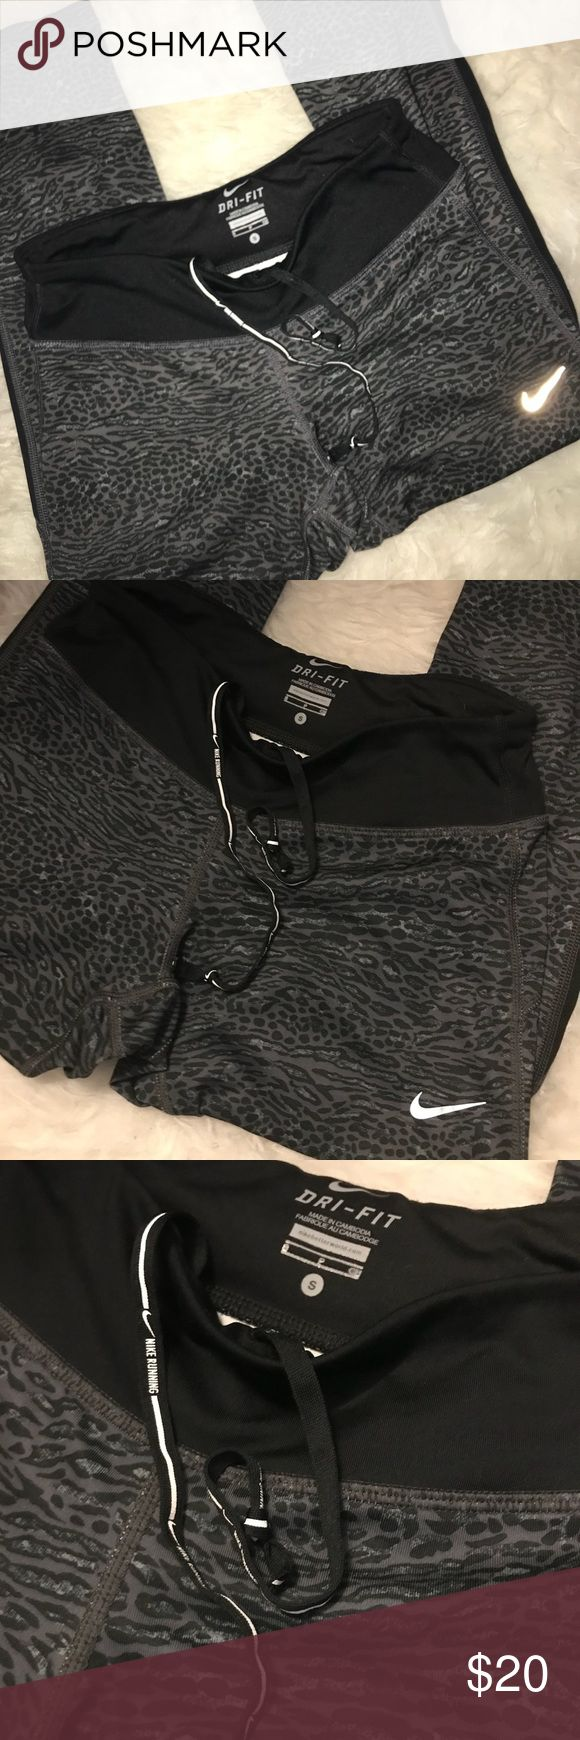 "Nike Leopard Print Leggings Great condition, 93% Polyester, 8% Spandex. Zip pocket at back, drawstring waist. Inseam approx. 21"", waist laying flat approx. 12.5"". Nike Pants Leggings"